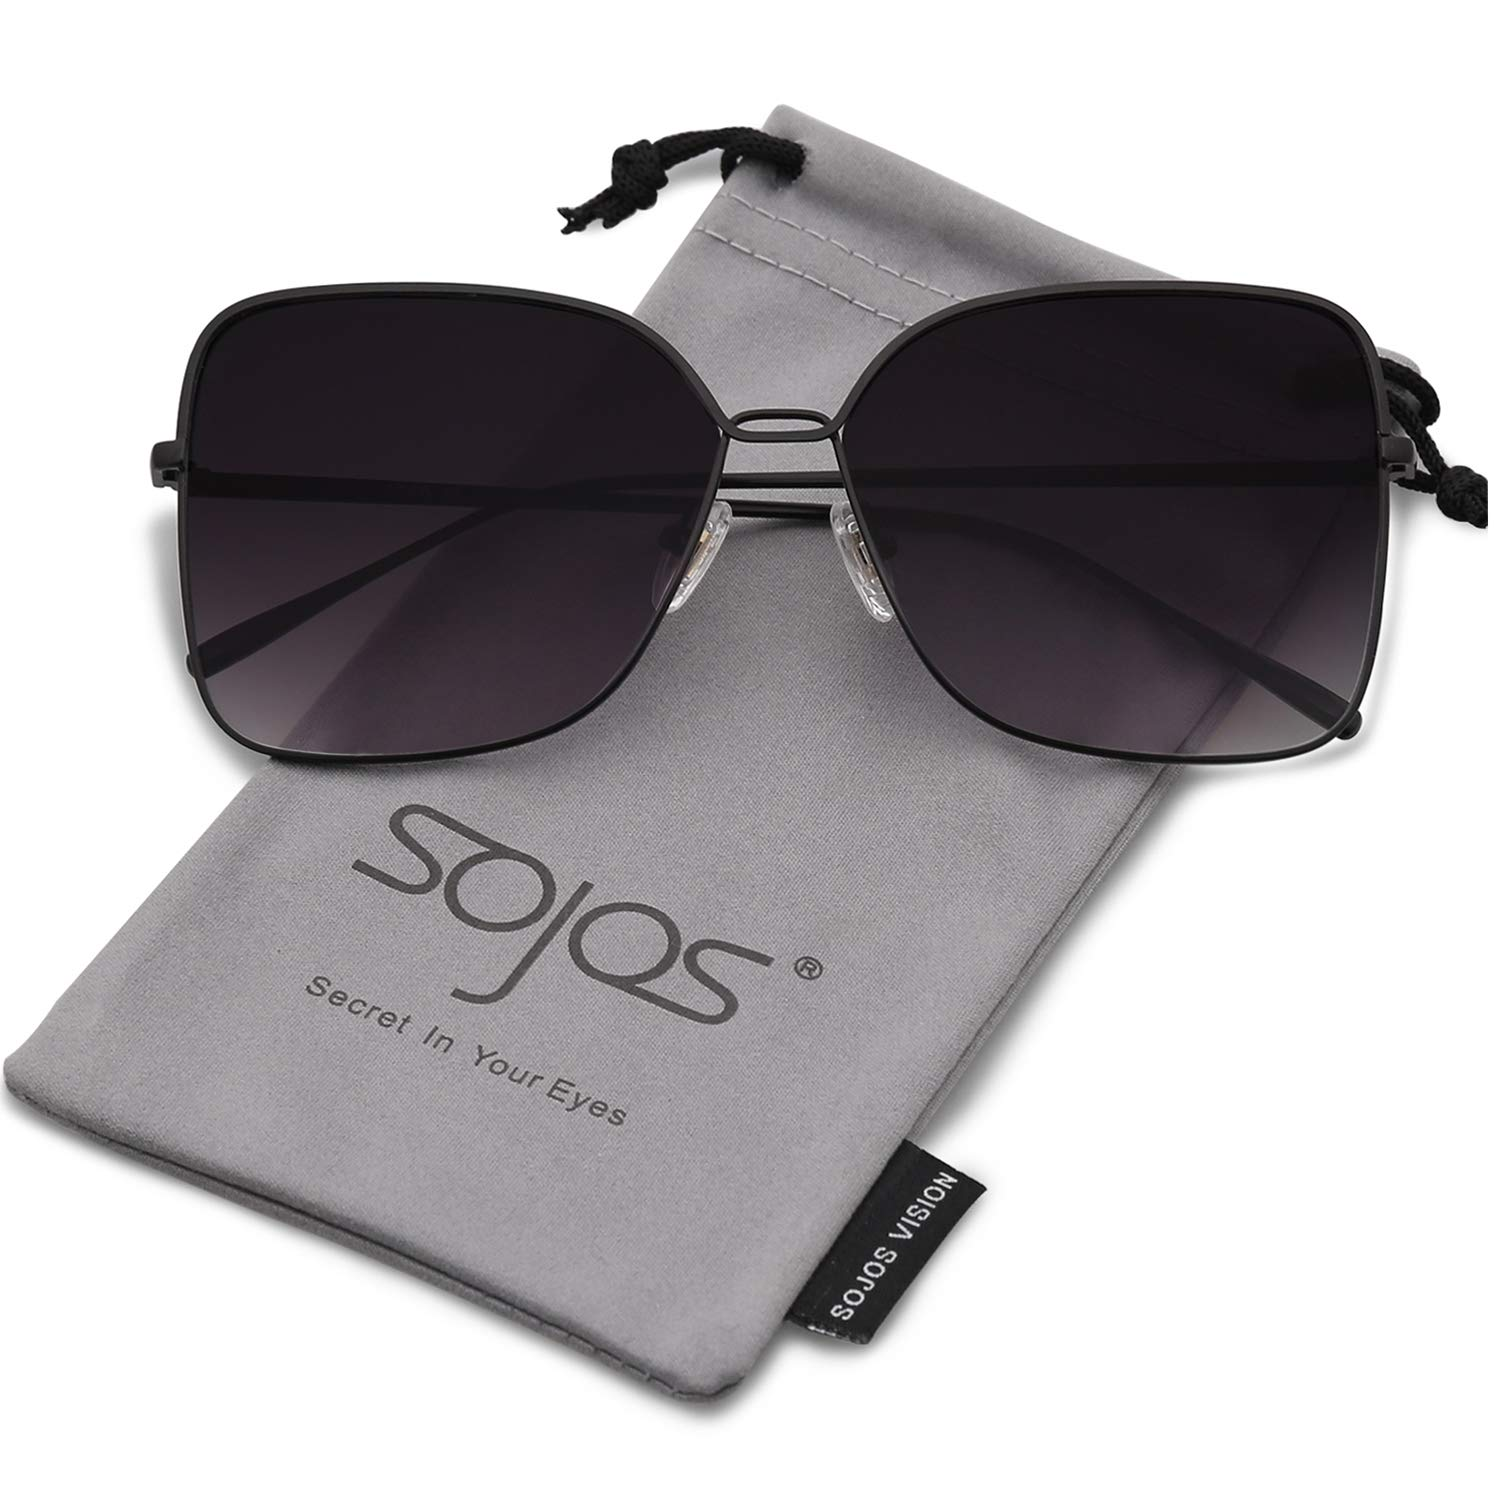 81498f789 SOJOS Fashion Oversized Square Sunglasses for Women Flat Mirrored Lens  SJ1082 with Black Frame/Gradient Grey Lens at Amazon Women's Clothing store: